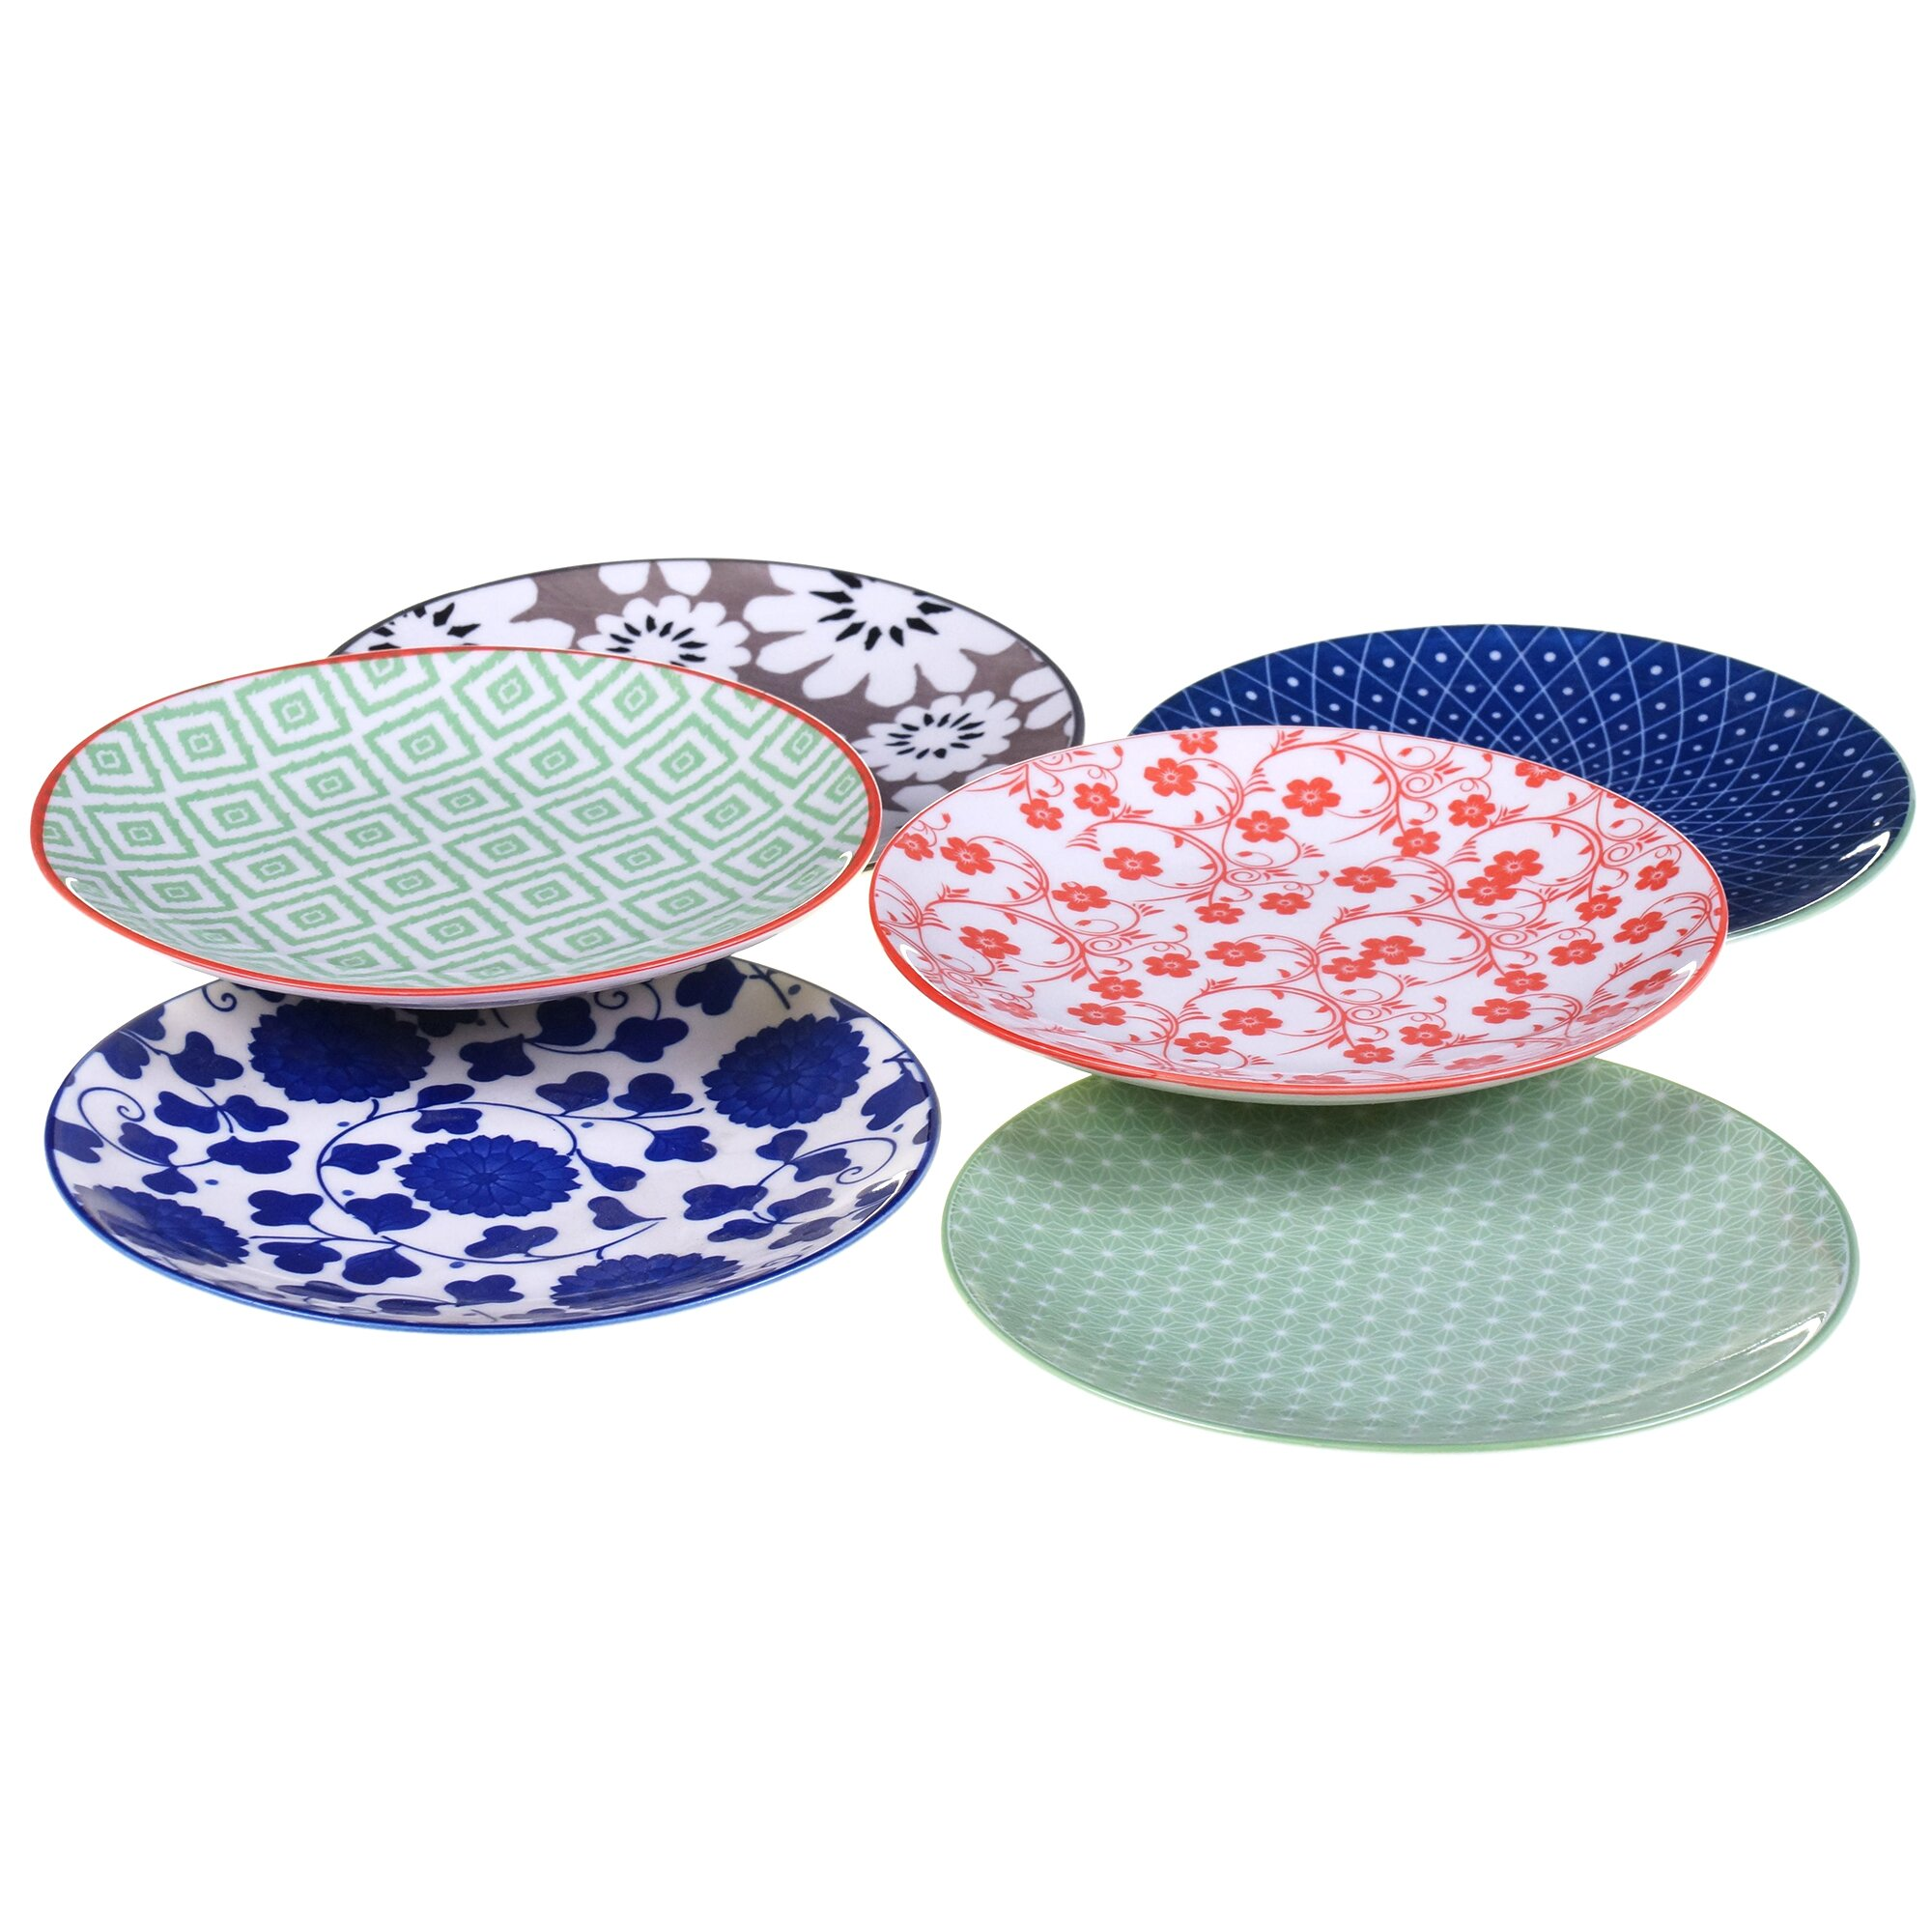 Certified international mix and match soho 5 5 canape for Canape plate sets